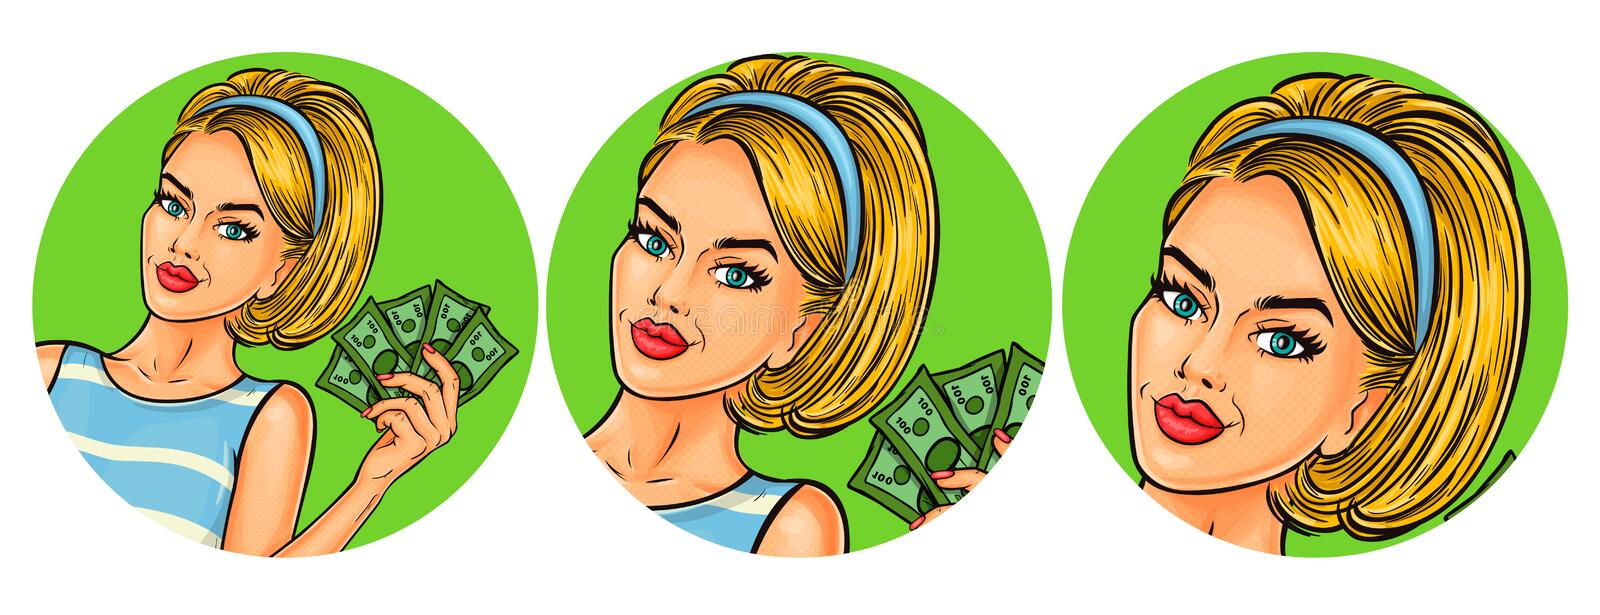 Set of vector illustration, womens pop art round avatars icons. Vector illustration, womens pop art round avatar icon for users of social networking, blogs. Girl vector illustration